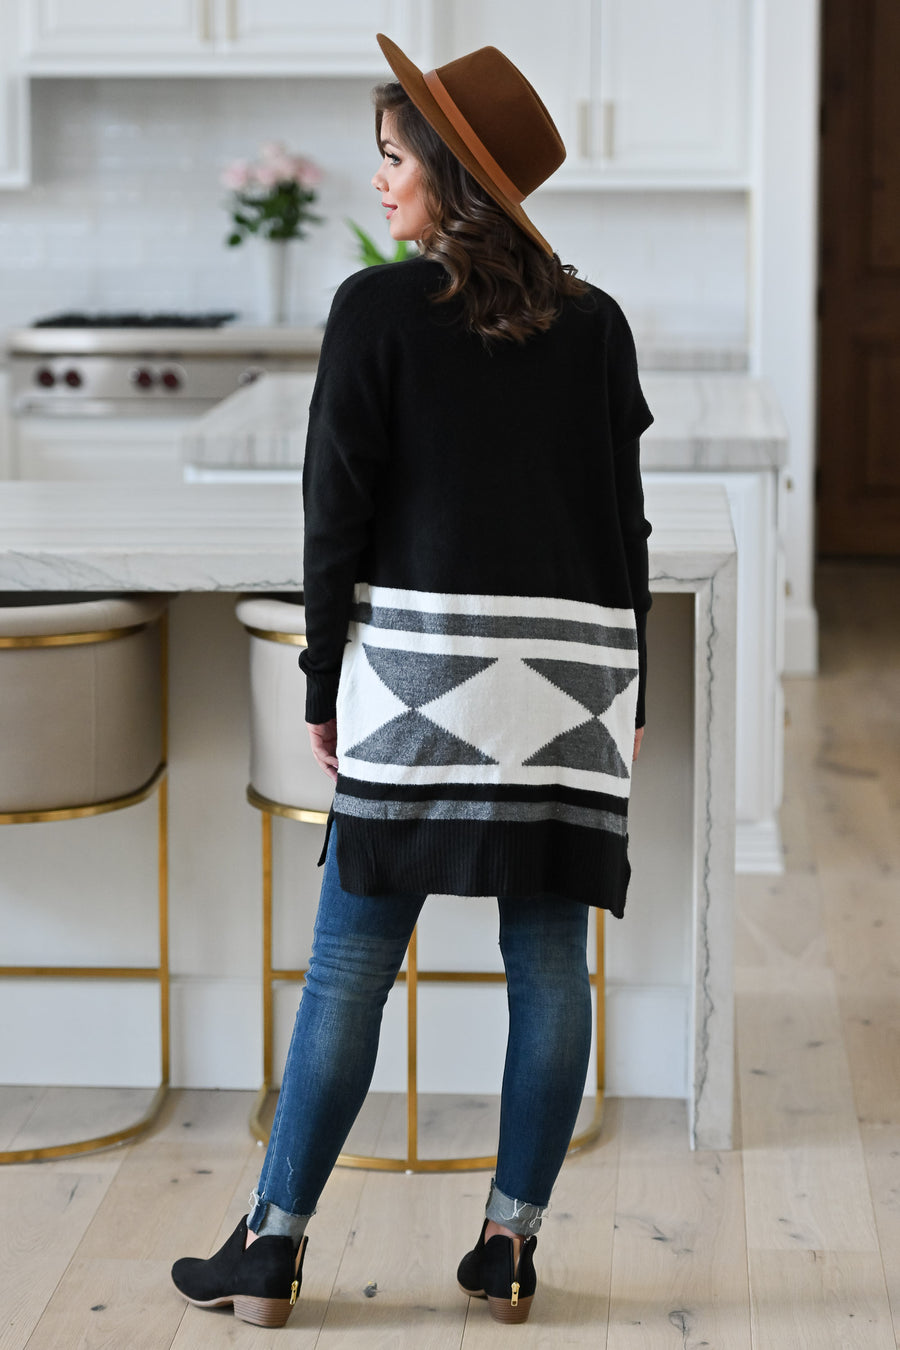 Who You Are Cardigan - Black womens trendy long sleeve oversized geometric print cardigan front; Model: Hannah Ann S